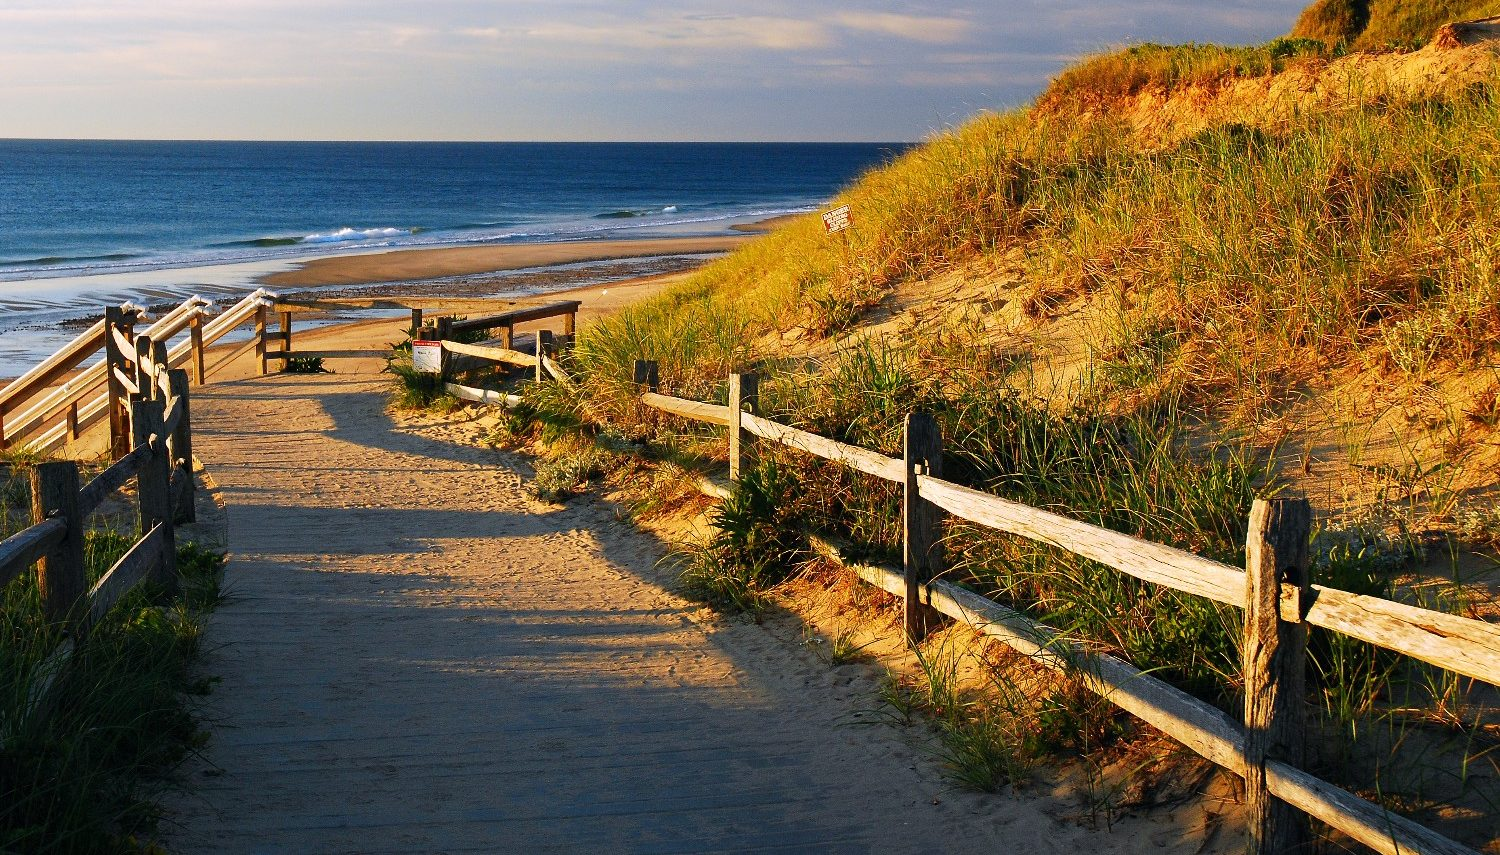 Beach path on Cape Cod for romantic walks